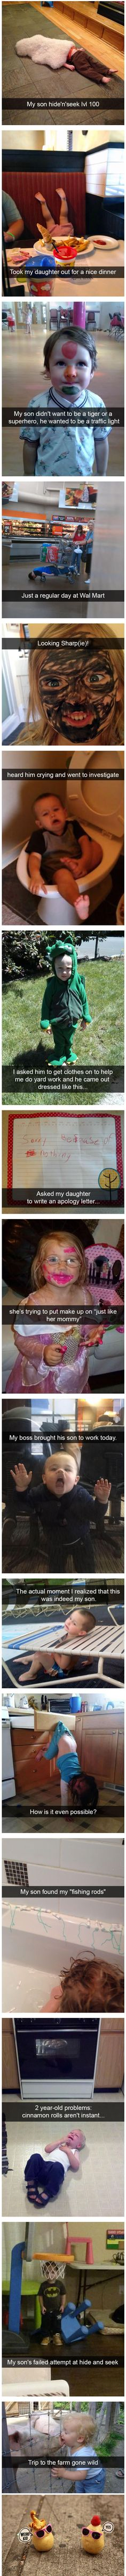 Kids Are Complete Weirdos - 9GAG